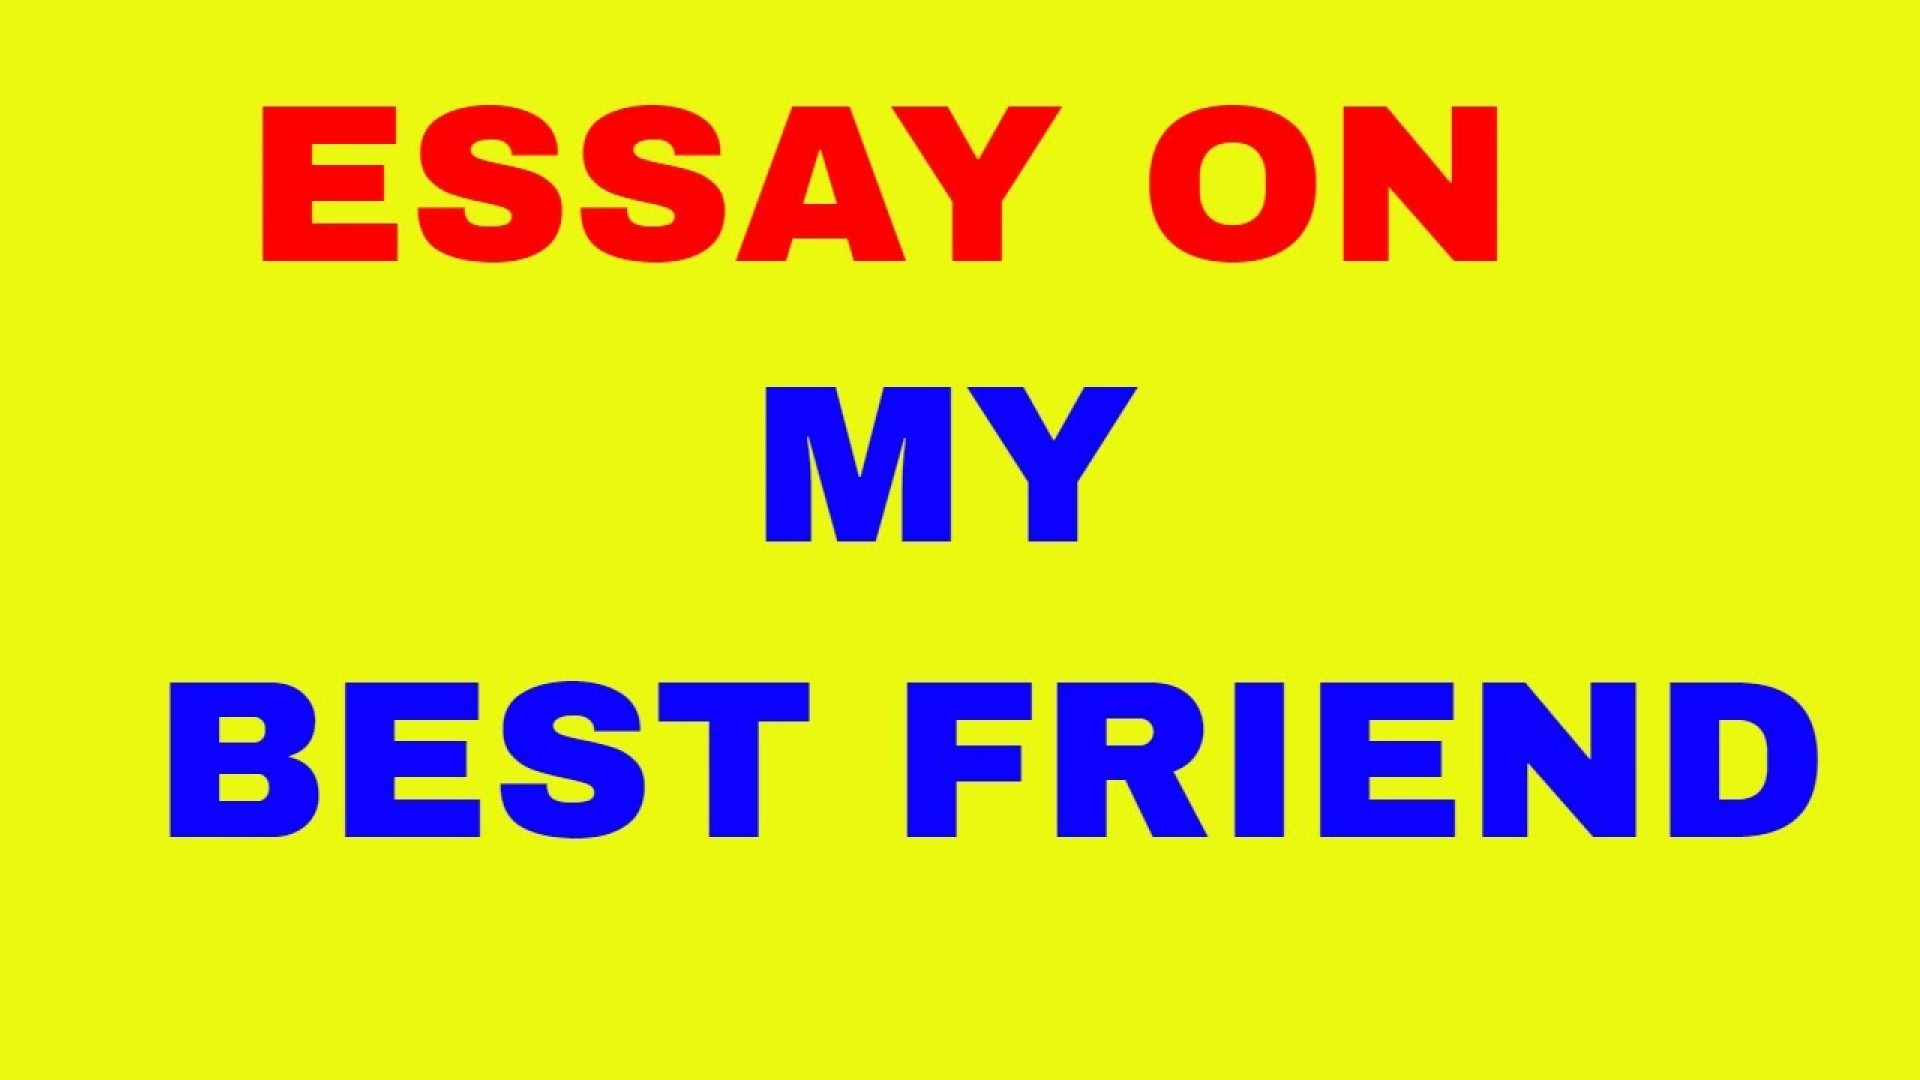 020 Essay Example Best Friend Magnificent Short In Hindi My For College Students Class 10 Urdu 1920